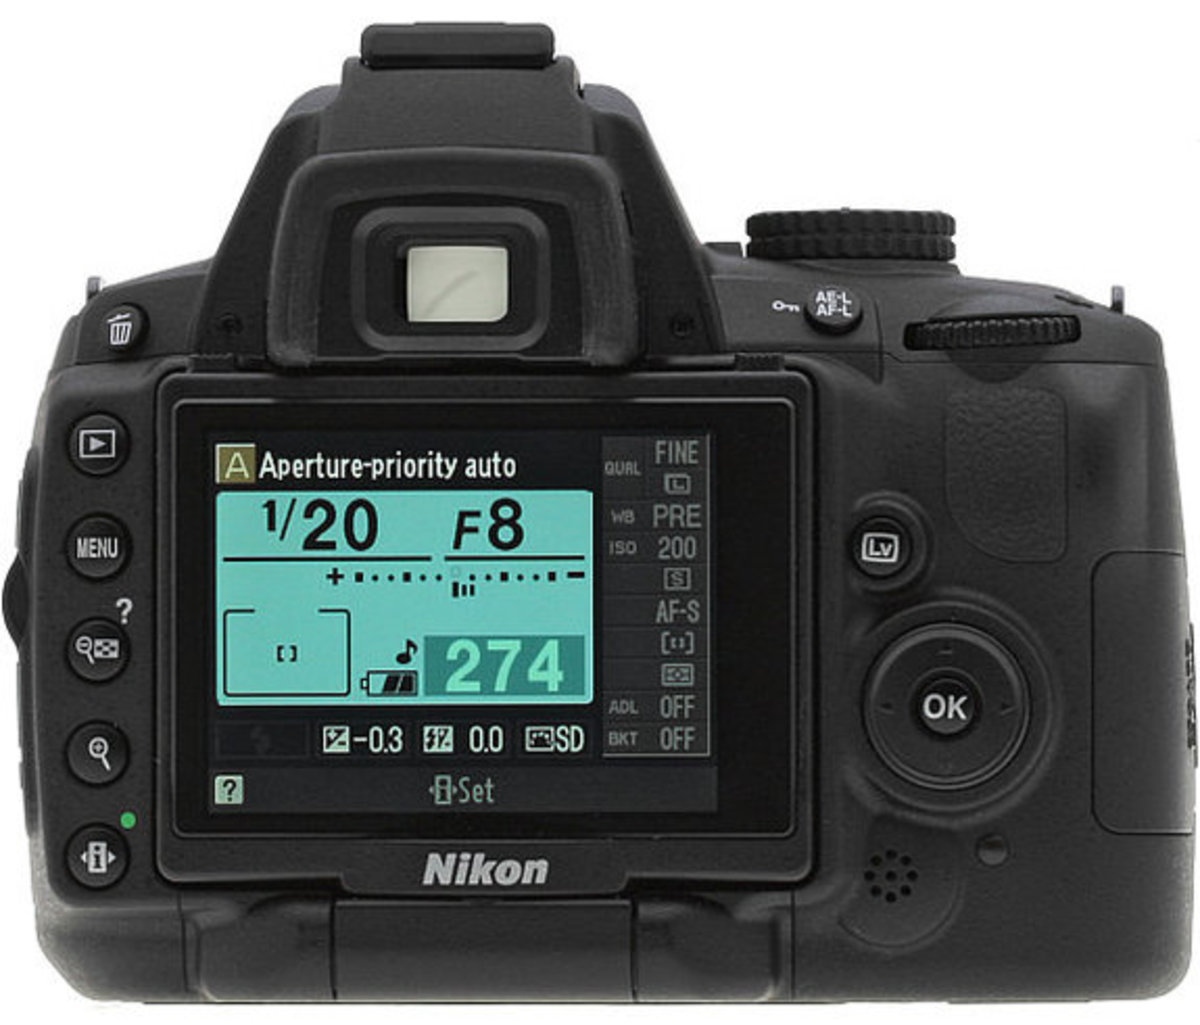 Is Nikon D5000 better than Canon 500D?